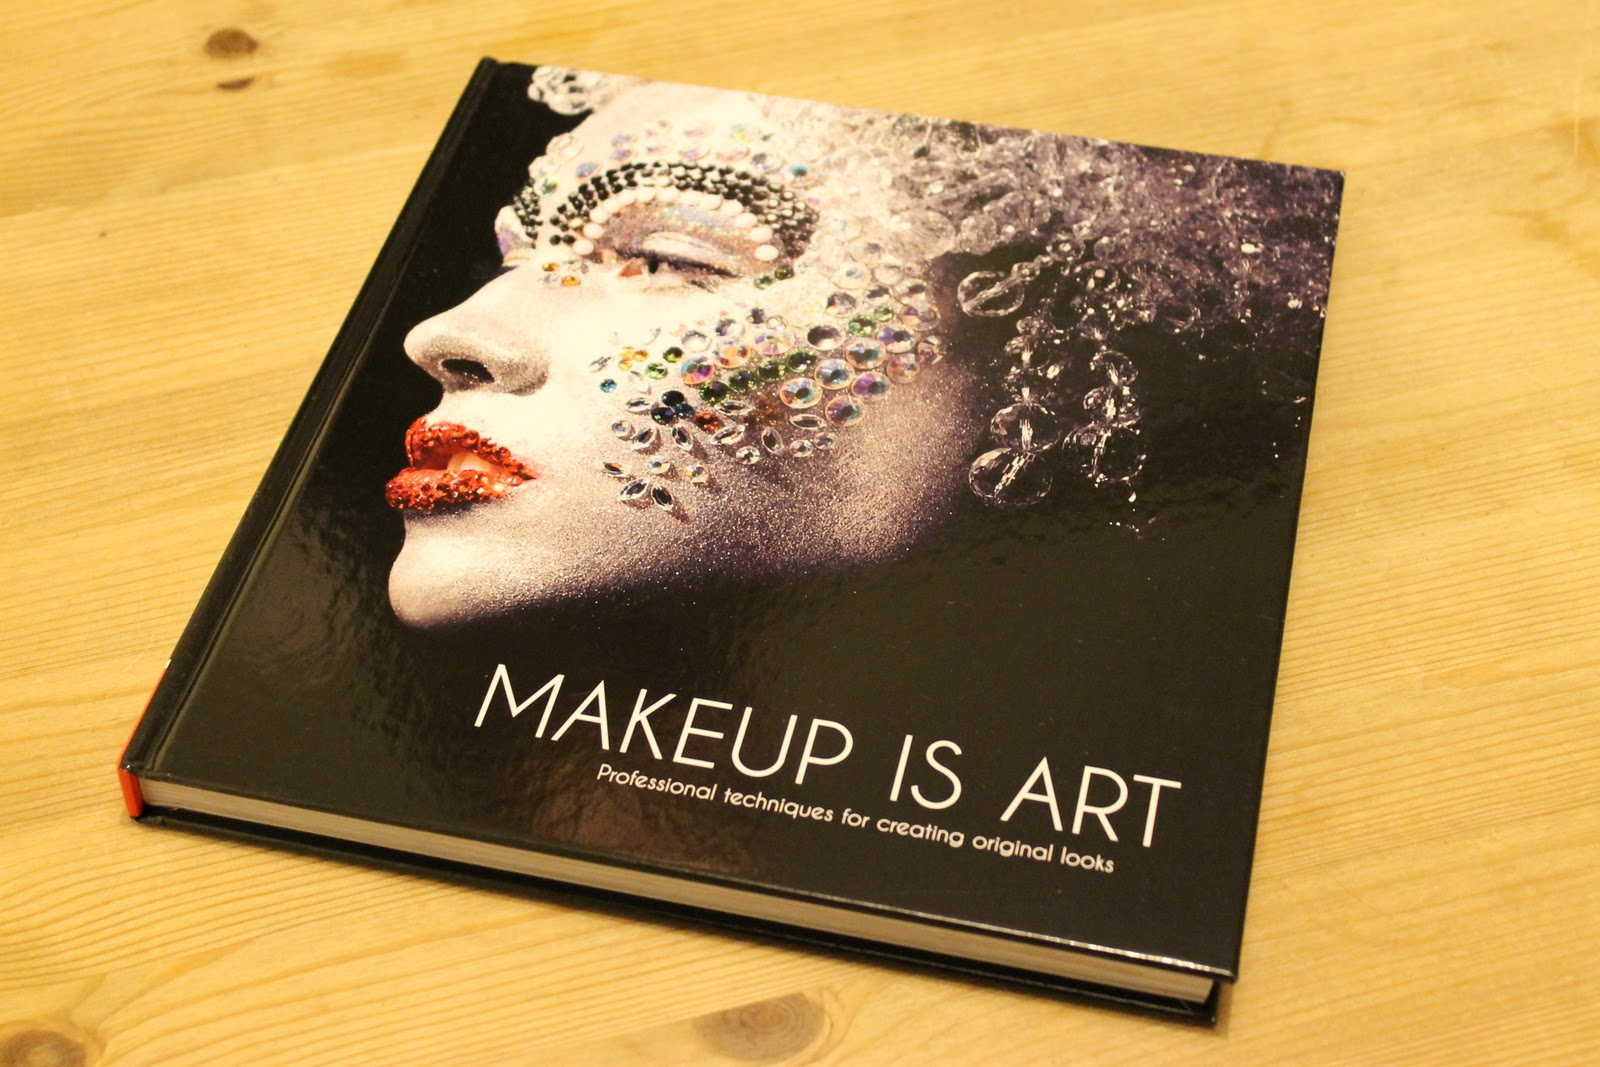 Reading through the authors introduction, it was mentioned that Jana Ririuni was also the founder of AOFM- Academy of freelance Makeup!!!